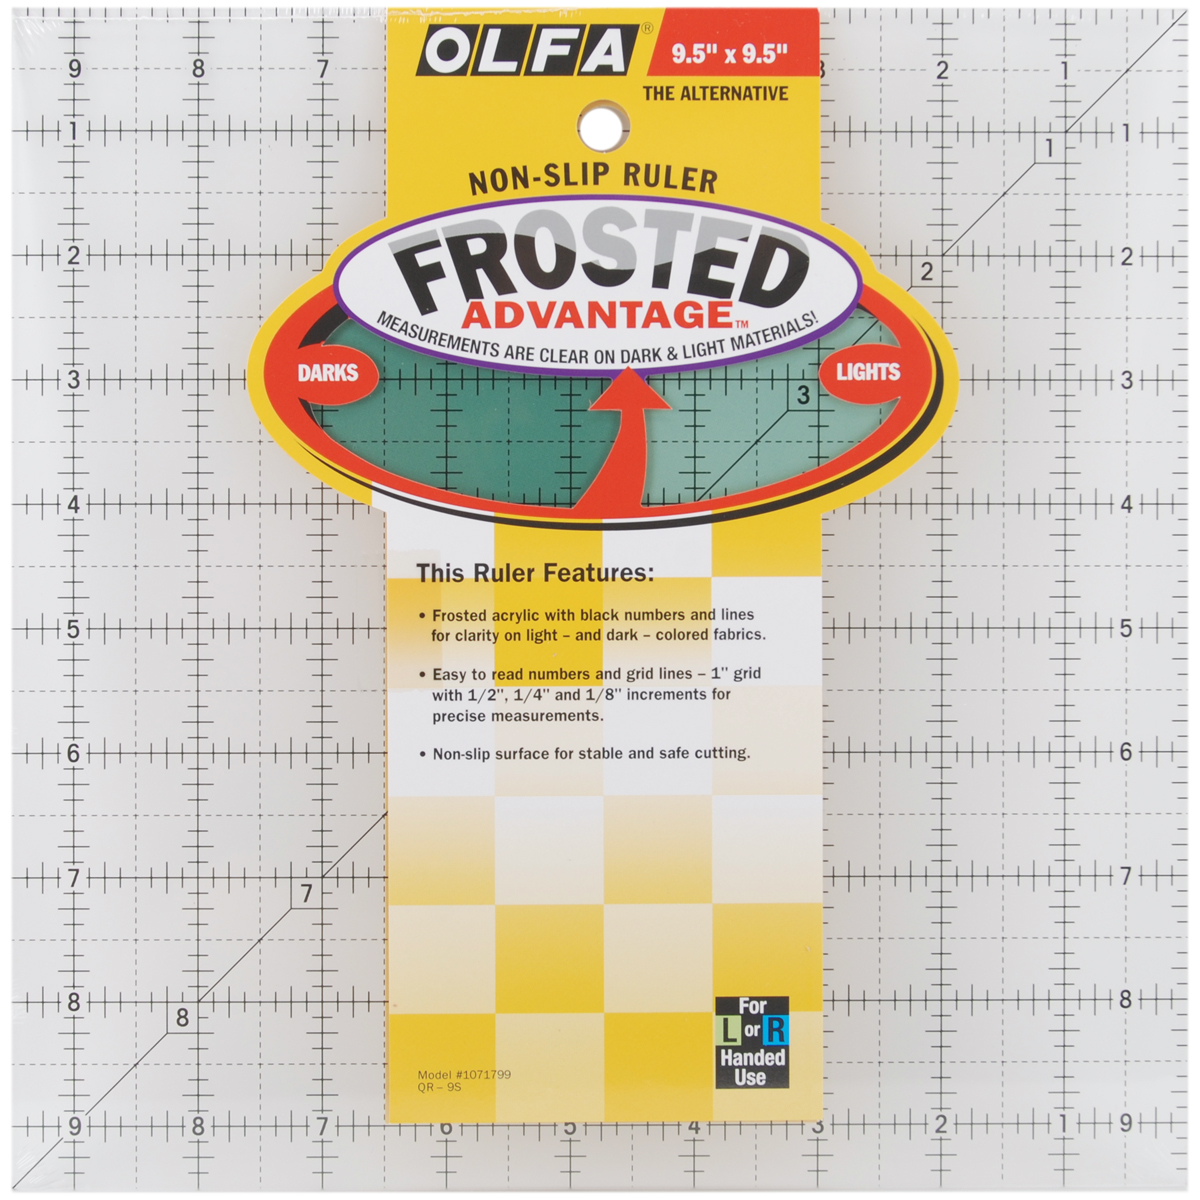 Olfa Frosted Advantage Non-Slip Ruler